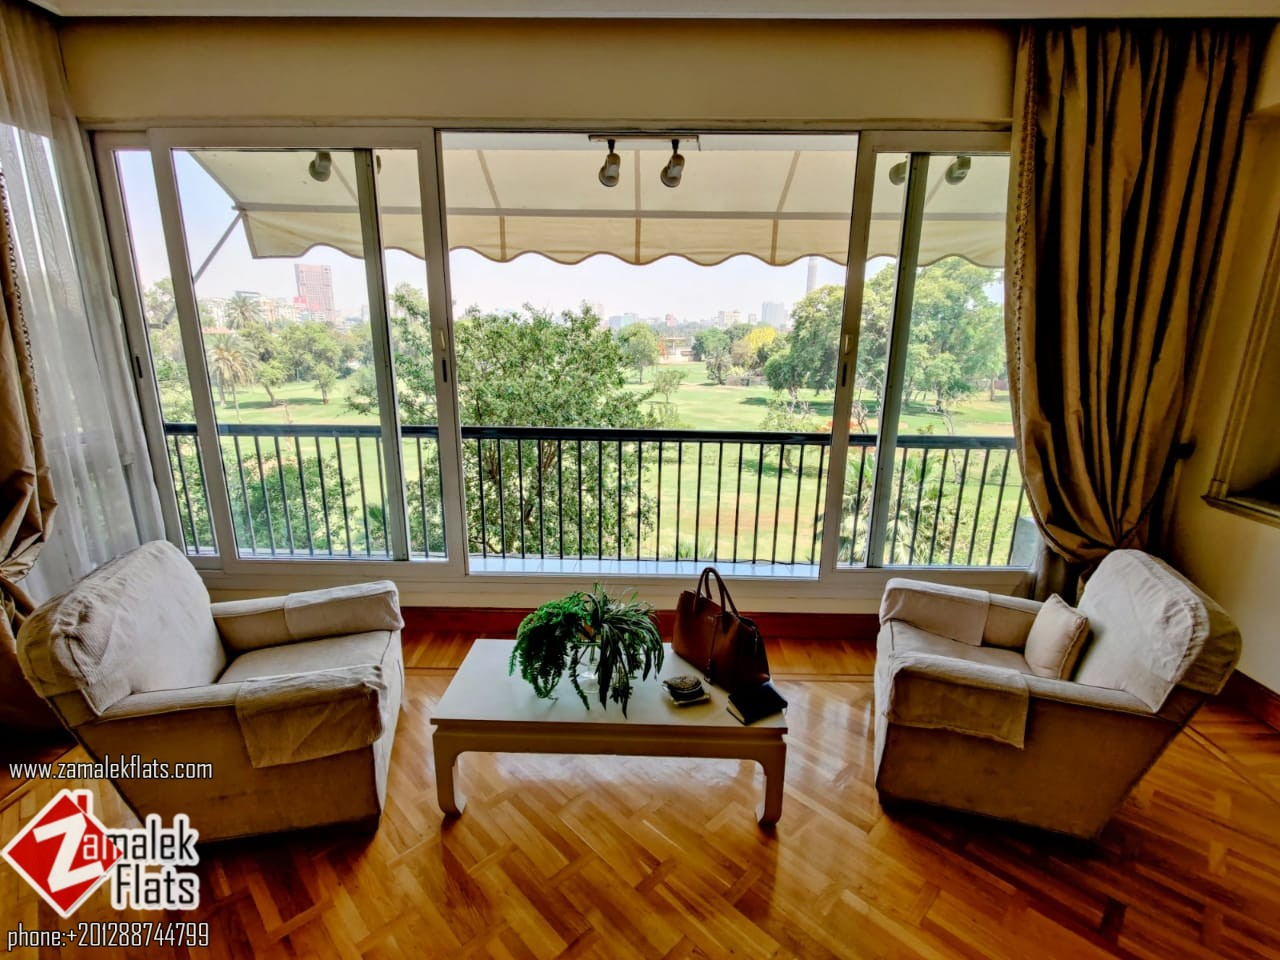 Furnished Green View Apartment For Rent In Zamalek